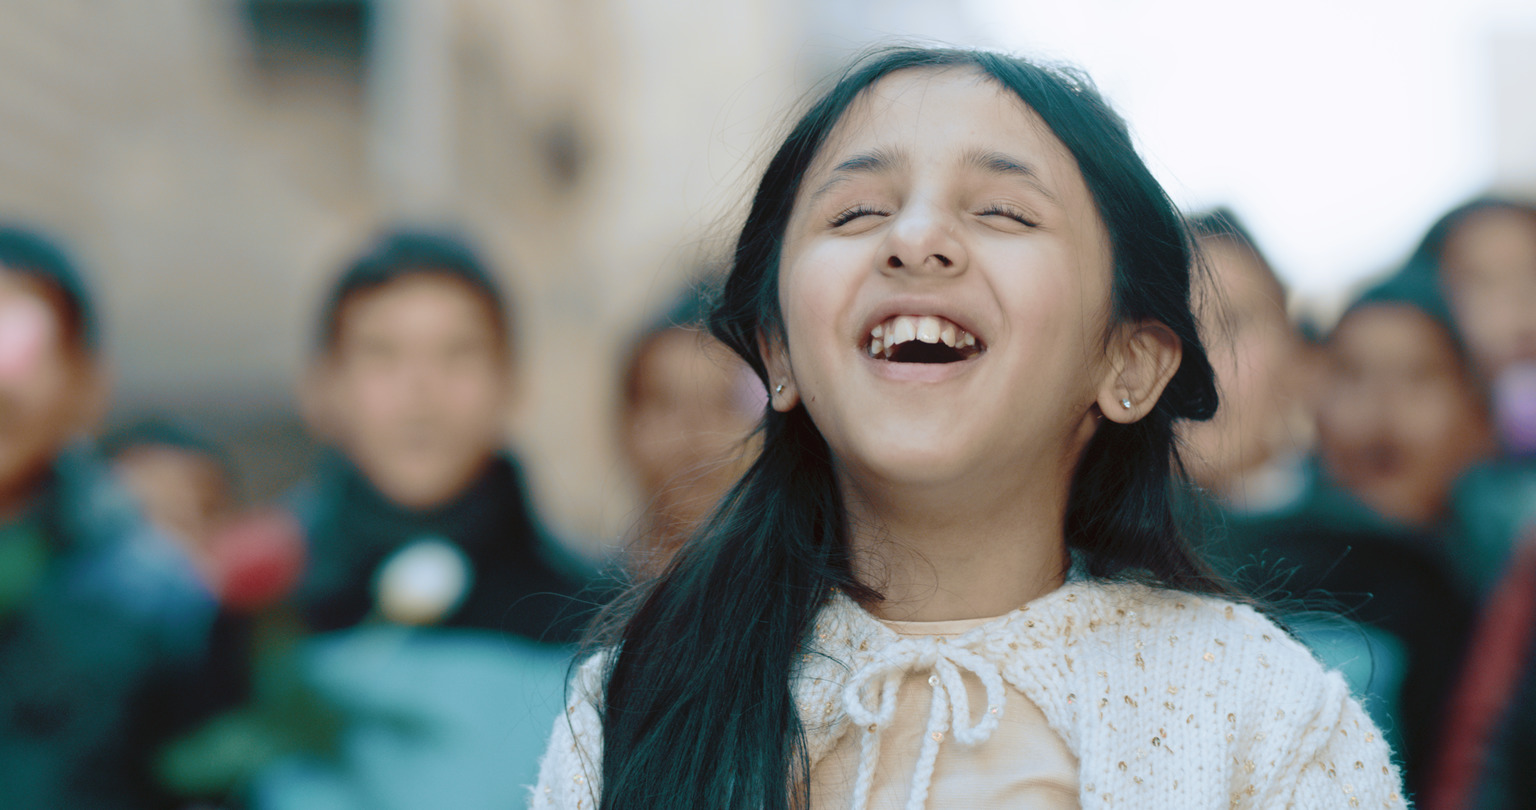 A close up of a girl singing with her eyes closed.